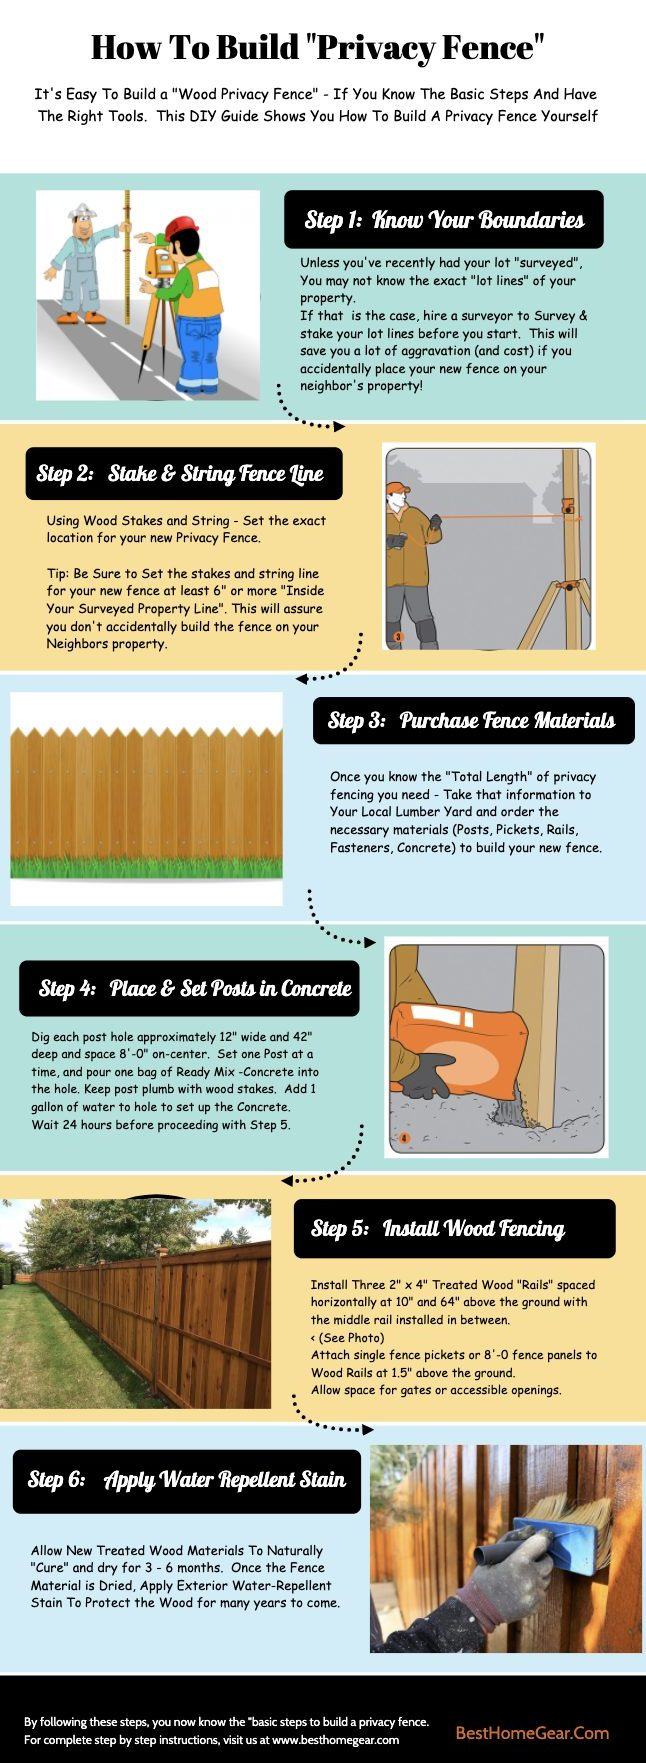 Cheapest Way To Build A Wood Privacy Fence Diy Guide For 2021